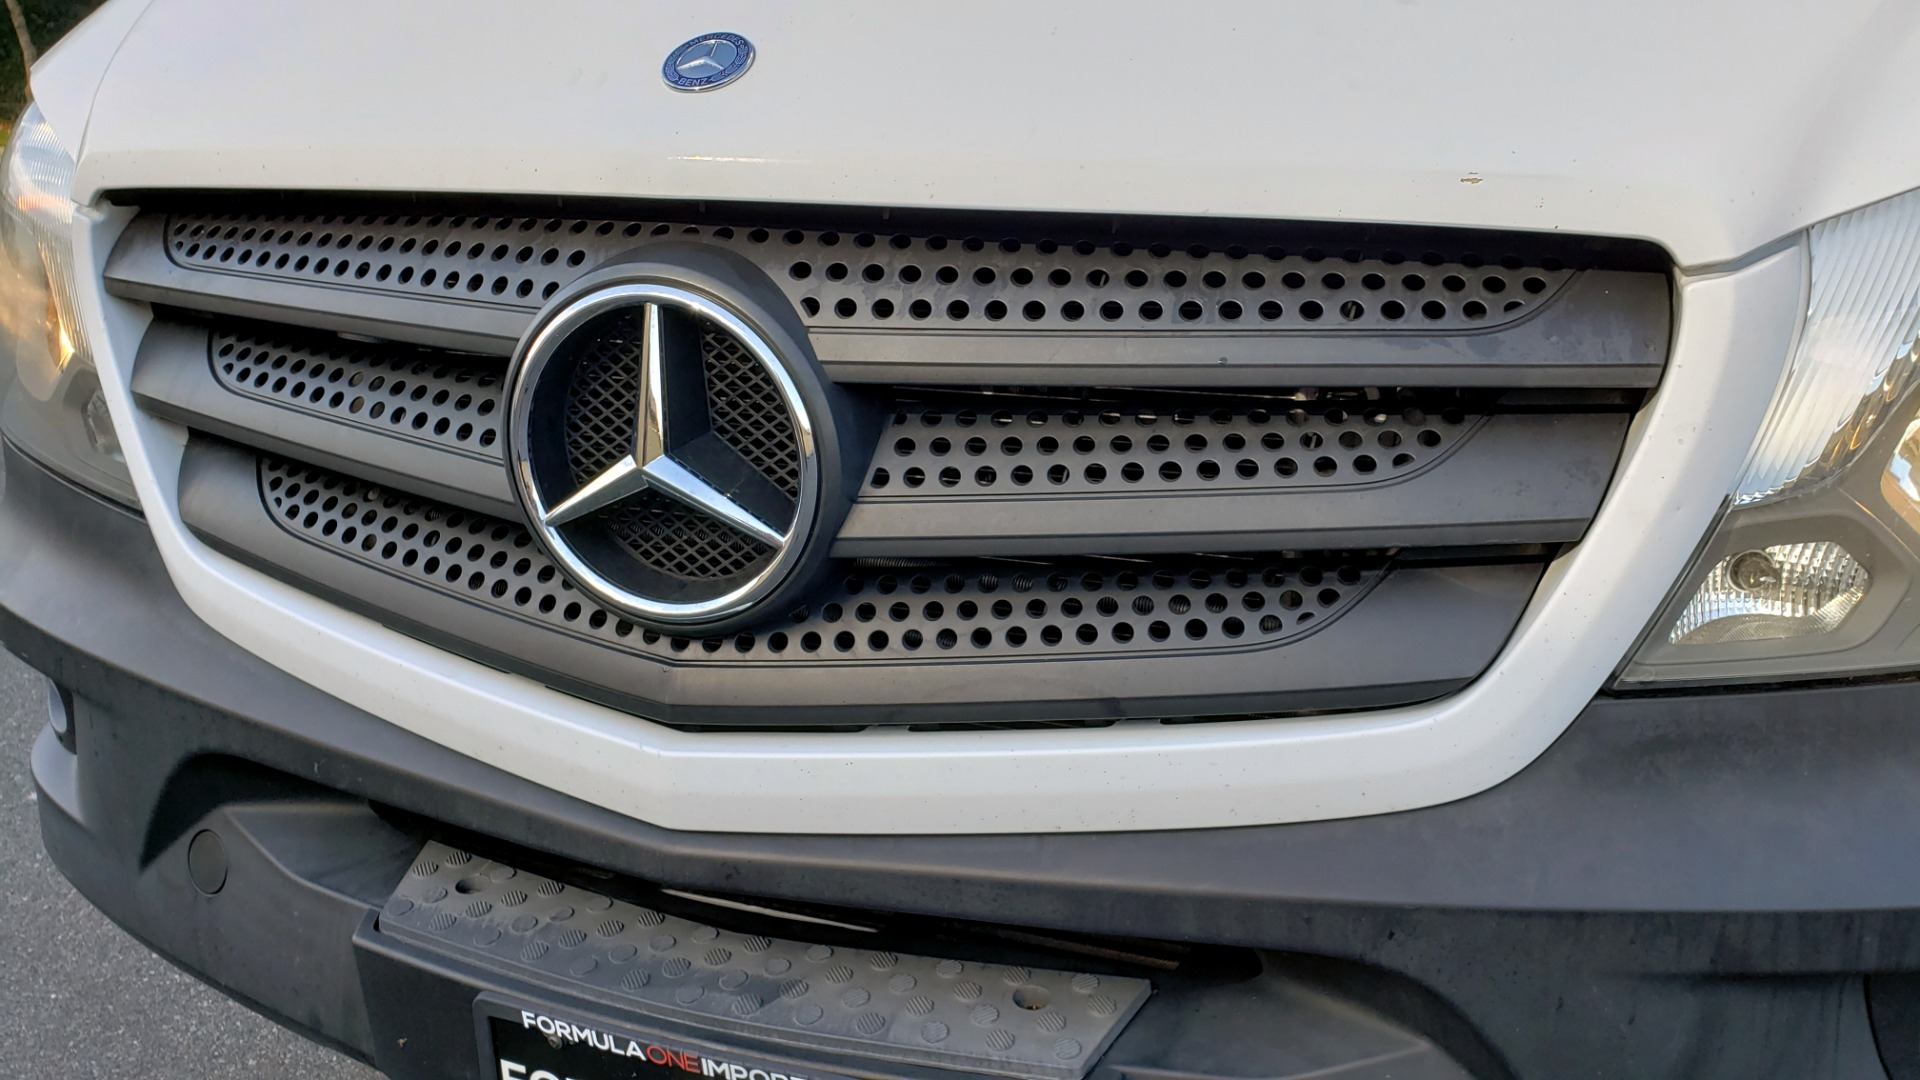 Used 2015 Mercedes-Benz SPRINTER CARGO VAN 4x4 3500 170 EXT / 3.0L V6 TURBO DIESEL / 5-SPD AUTO / REARVIEW for sale $51,999 at Formula Imports in Charlotte NC 28227 38